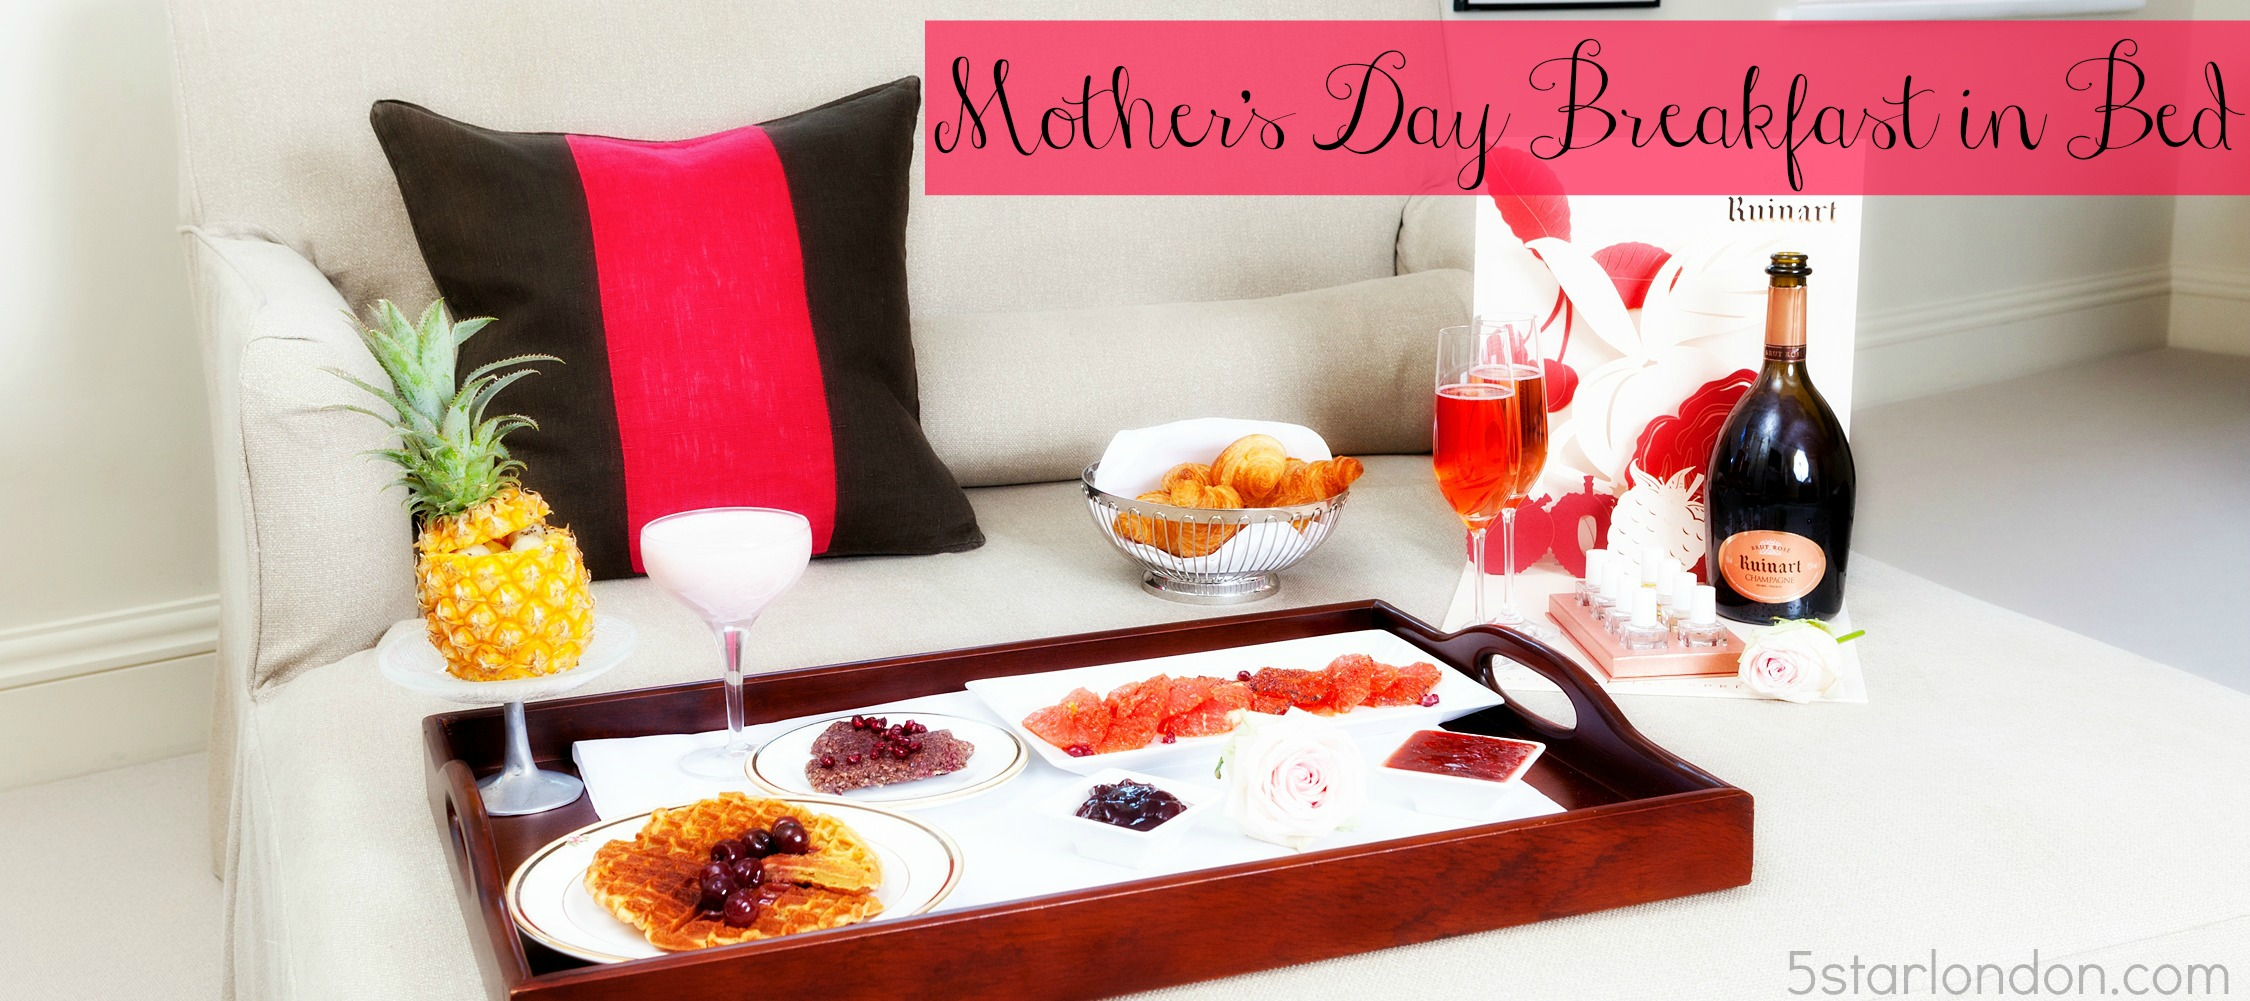 Mother 39 s day breakfast in bed a checklist and ideas as for Good ideas for mother s day breakfast in bed